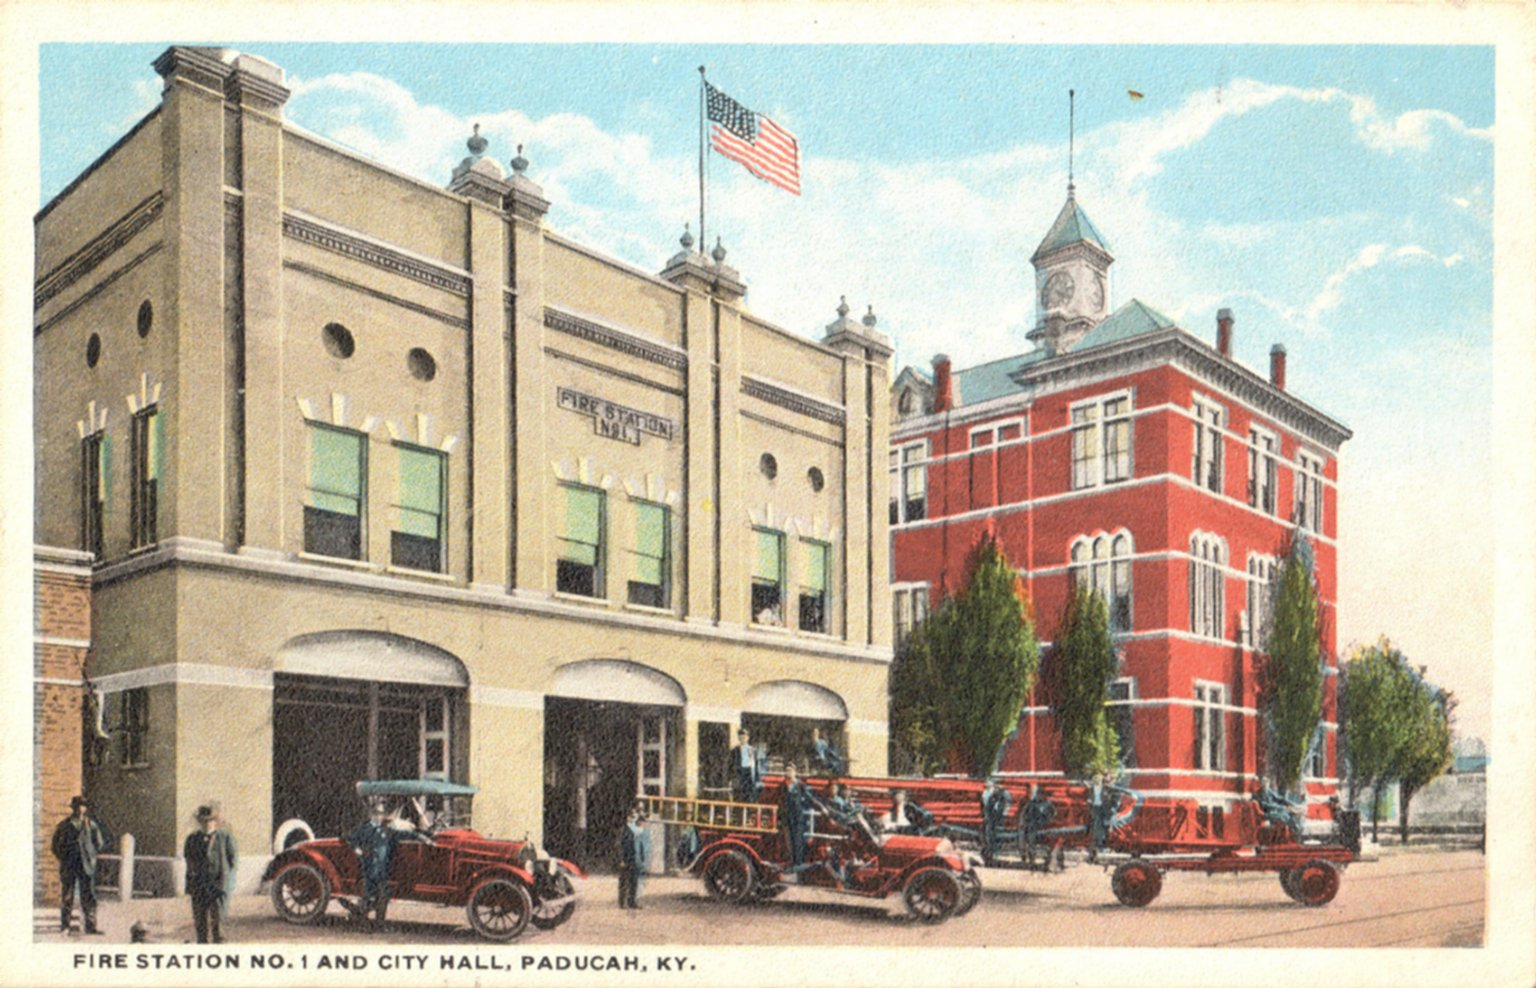 Fire Station No. 1 And City Hall, Paducah, KY.